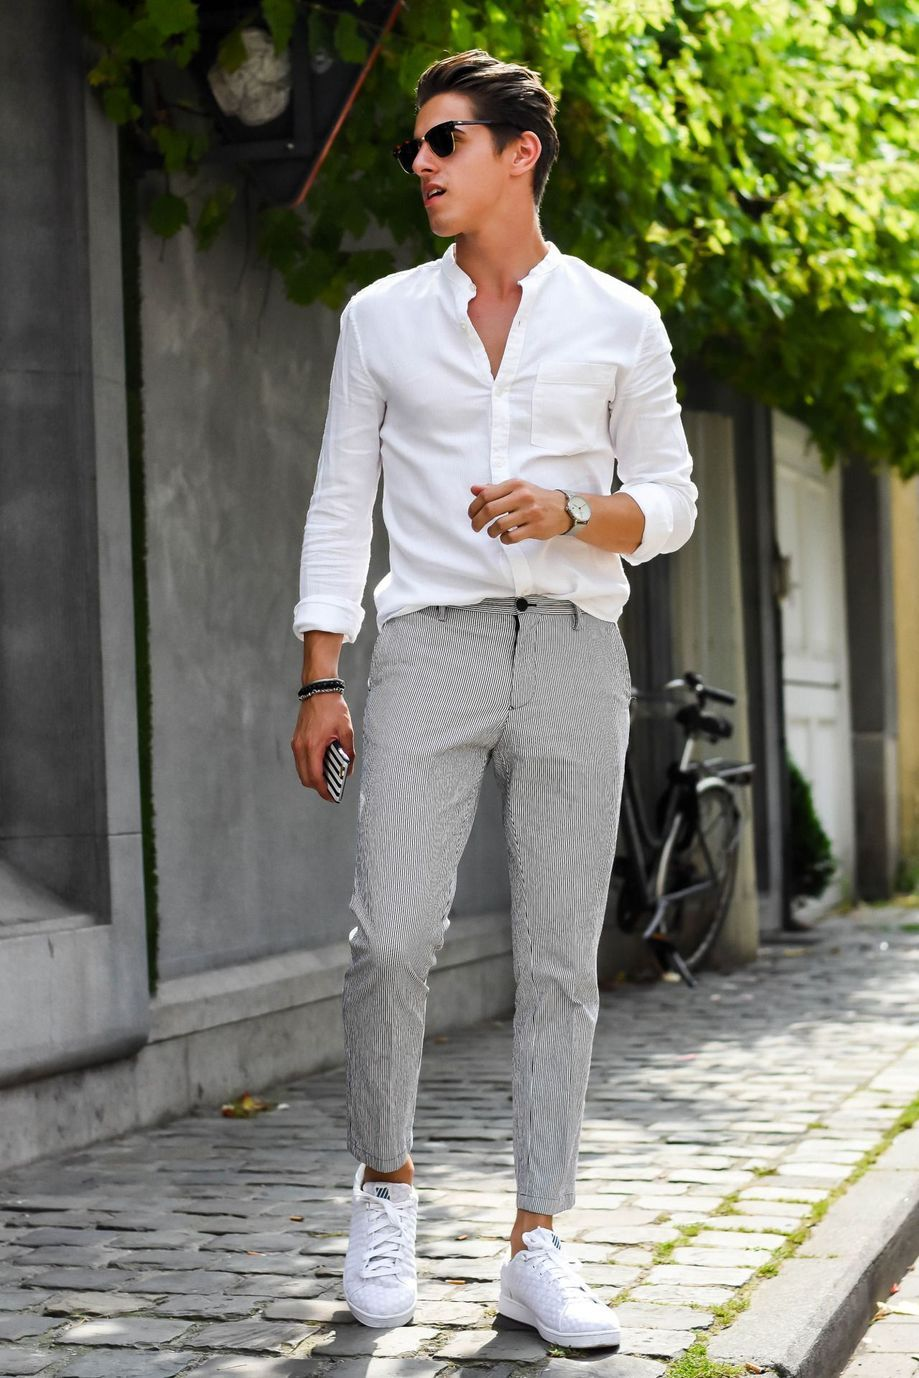 Cool Casual Men S Fashions Summer Outfits Ideas 12 Fashion Best